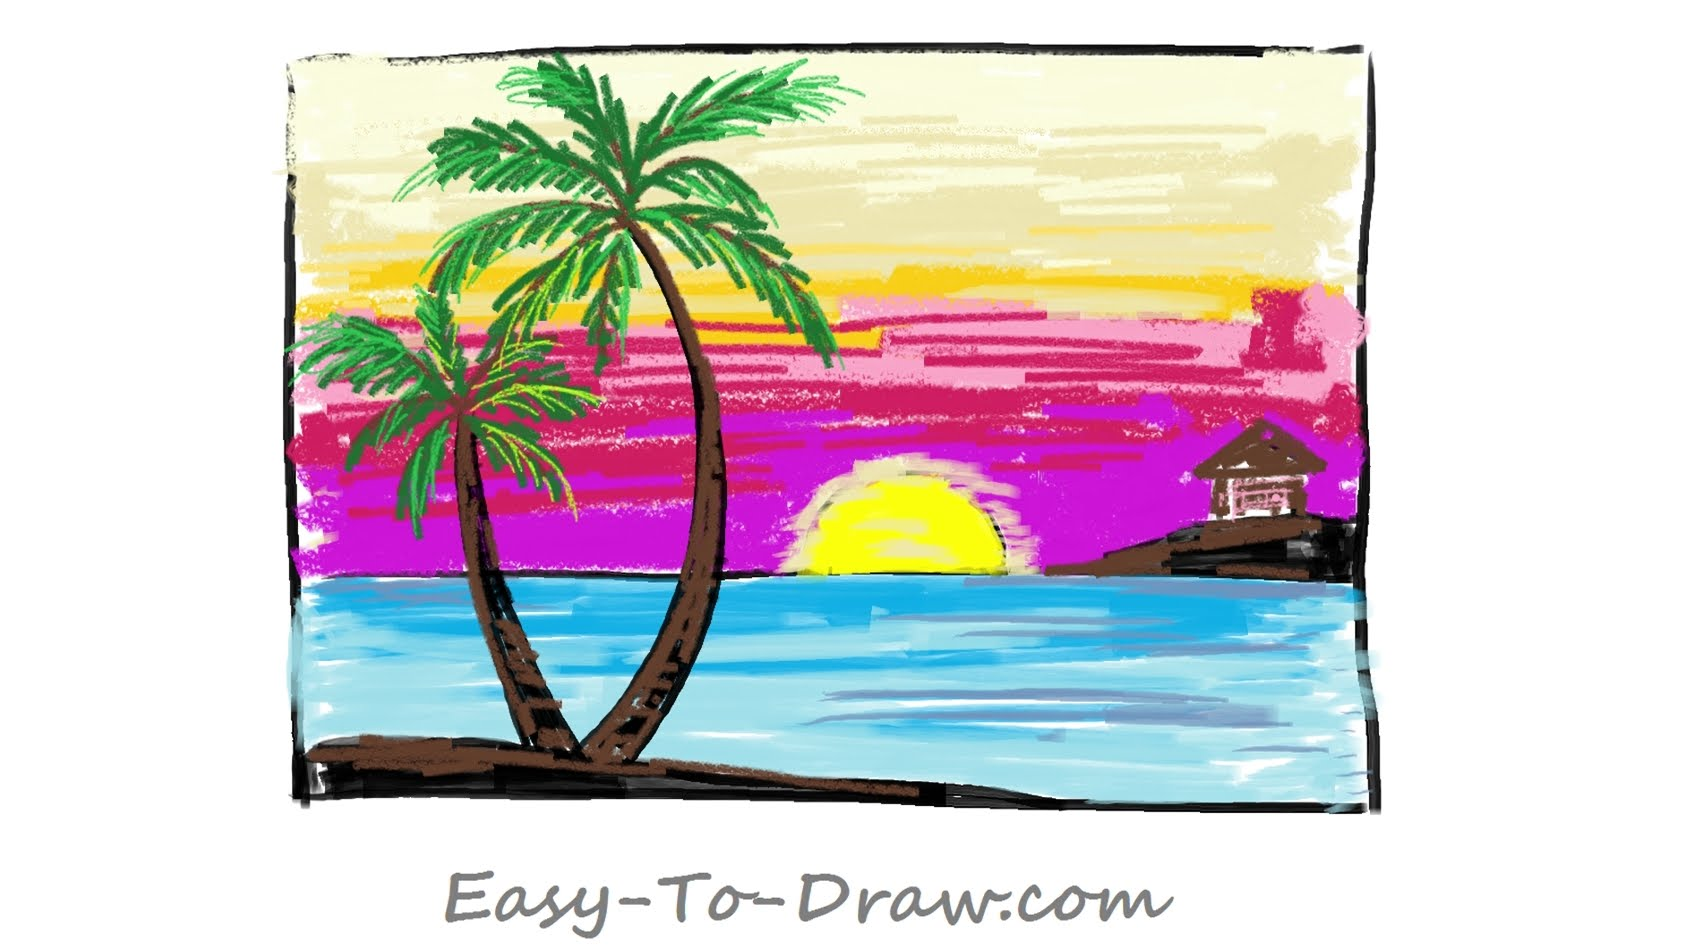 1687x950 How To Draw A Cartoon Seaside Sunset With Coconut Trees Step By